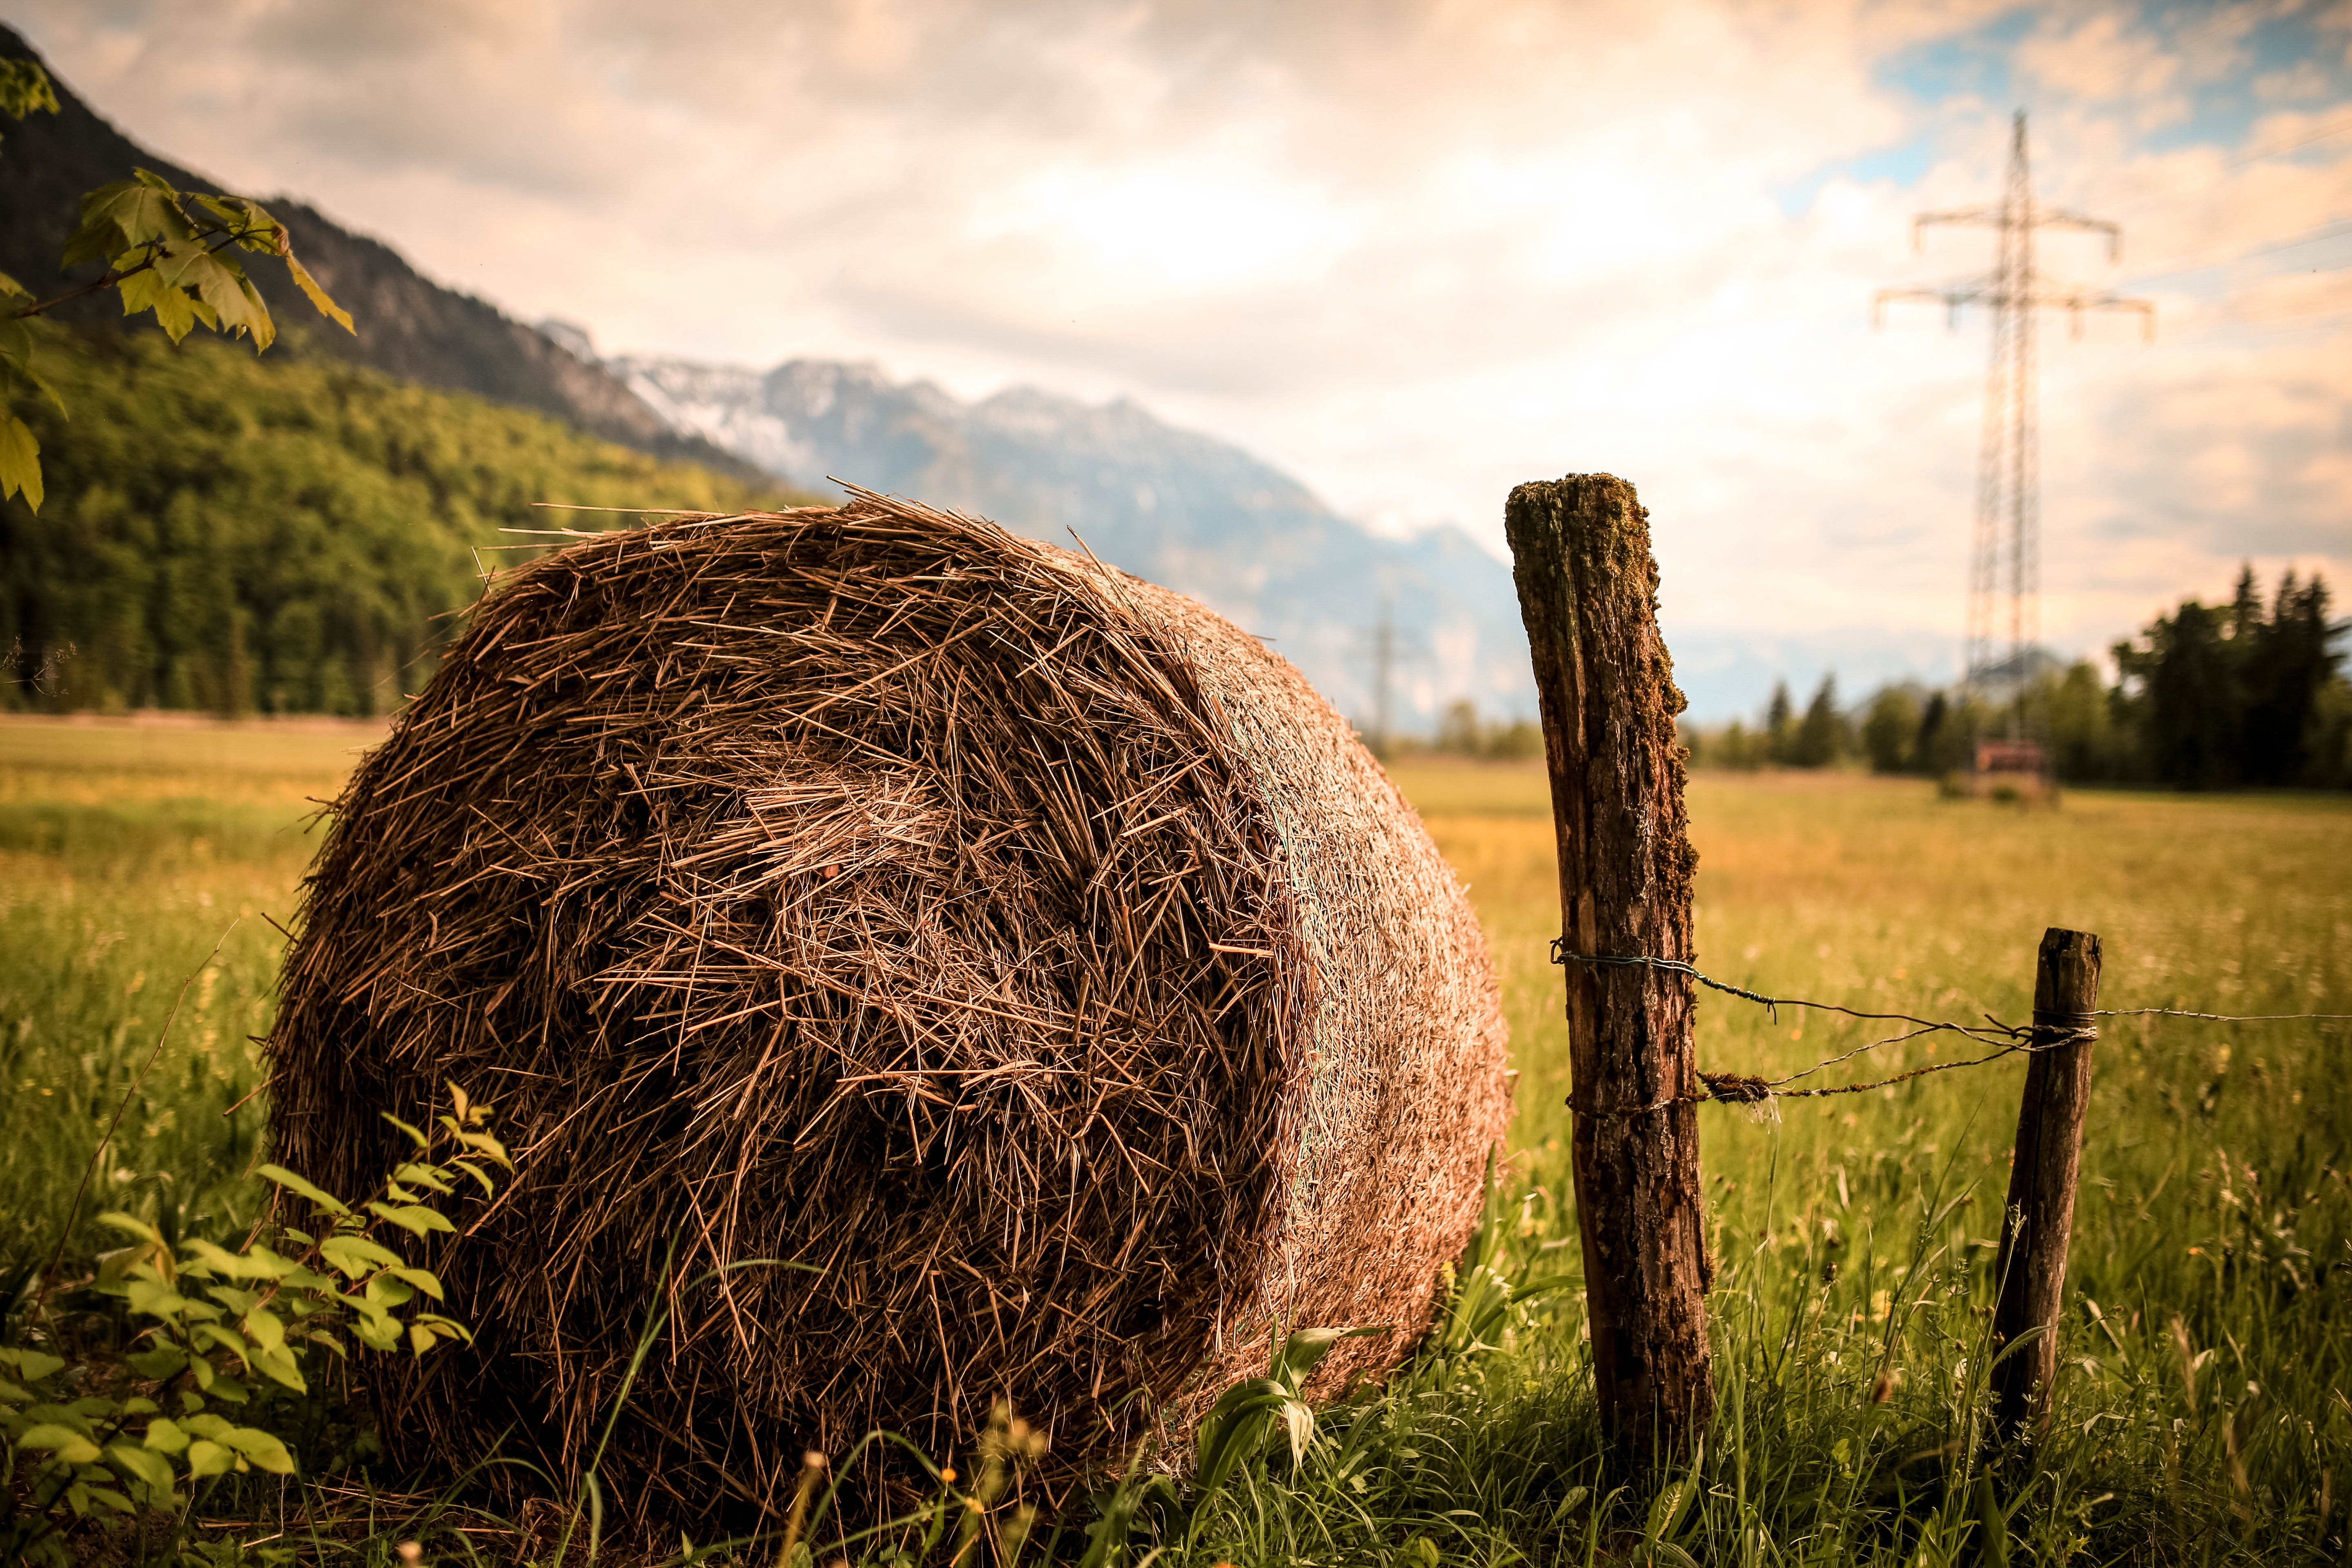 Farm image - Photo by Tobi from Pexels